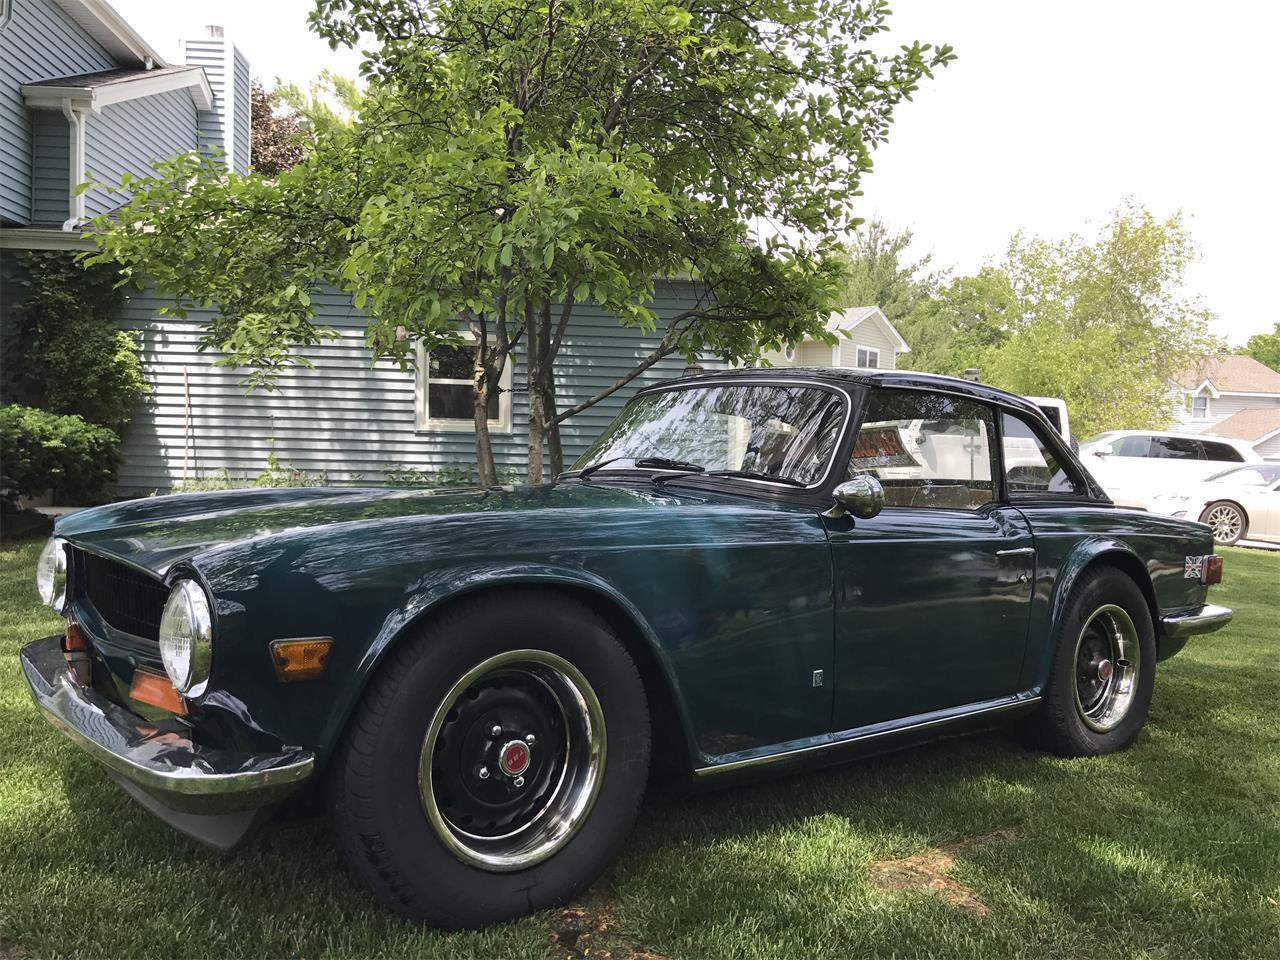 Large Picture of 1974 Triumph TR6 located in Grayslake Illinois - $15,995.00 Offered by a Private Seller - LE9Y